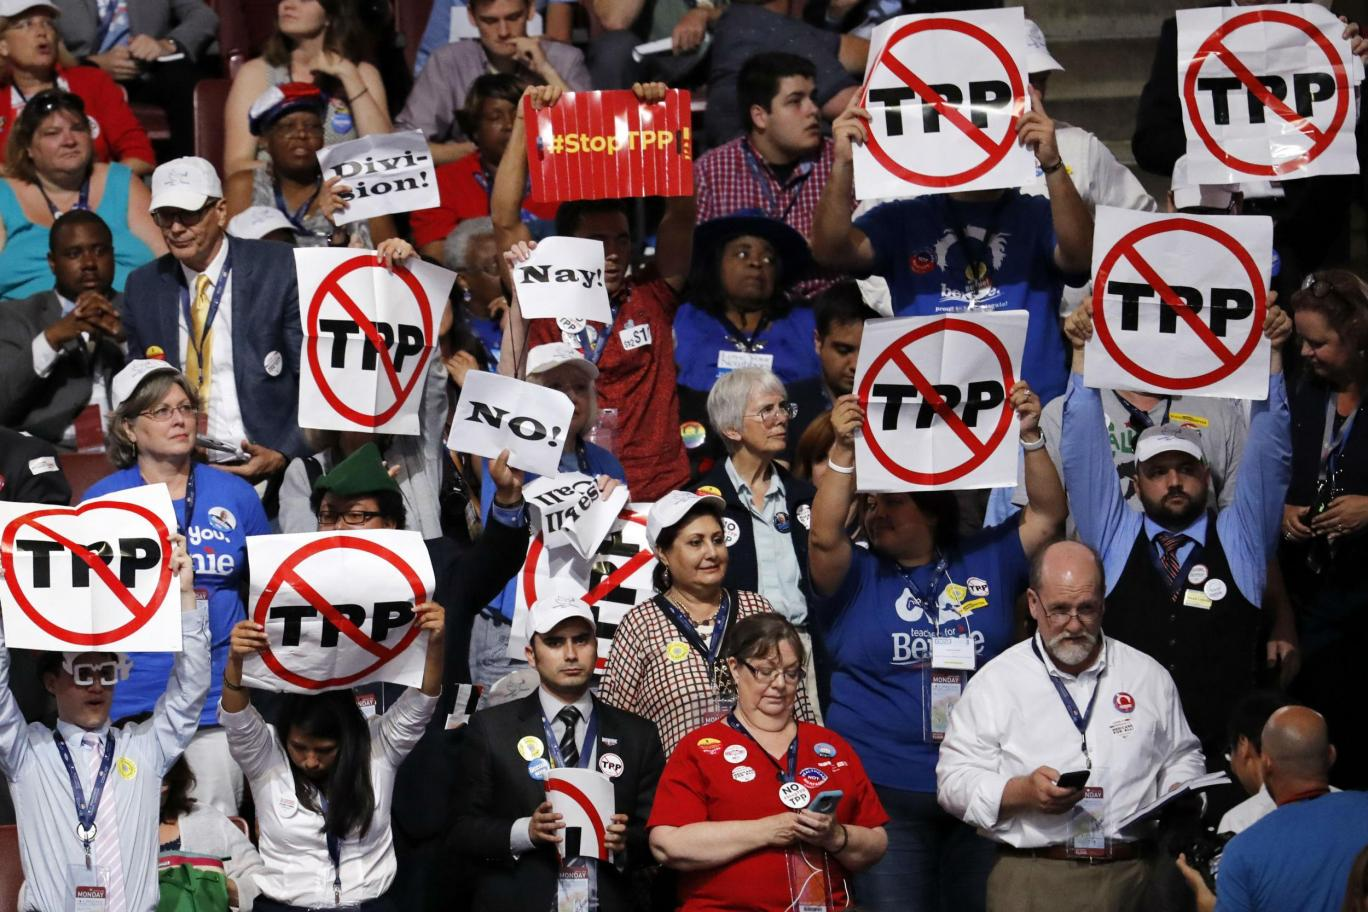 Why The Mainstream Media Is Silent About The Trans-Pacific Partnership